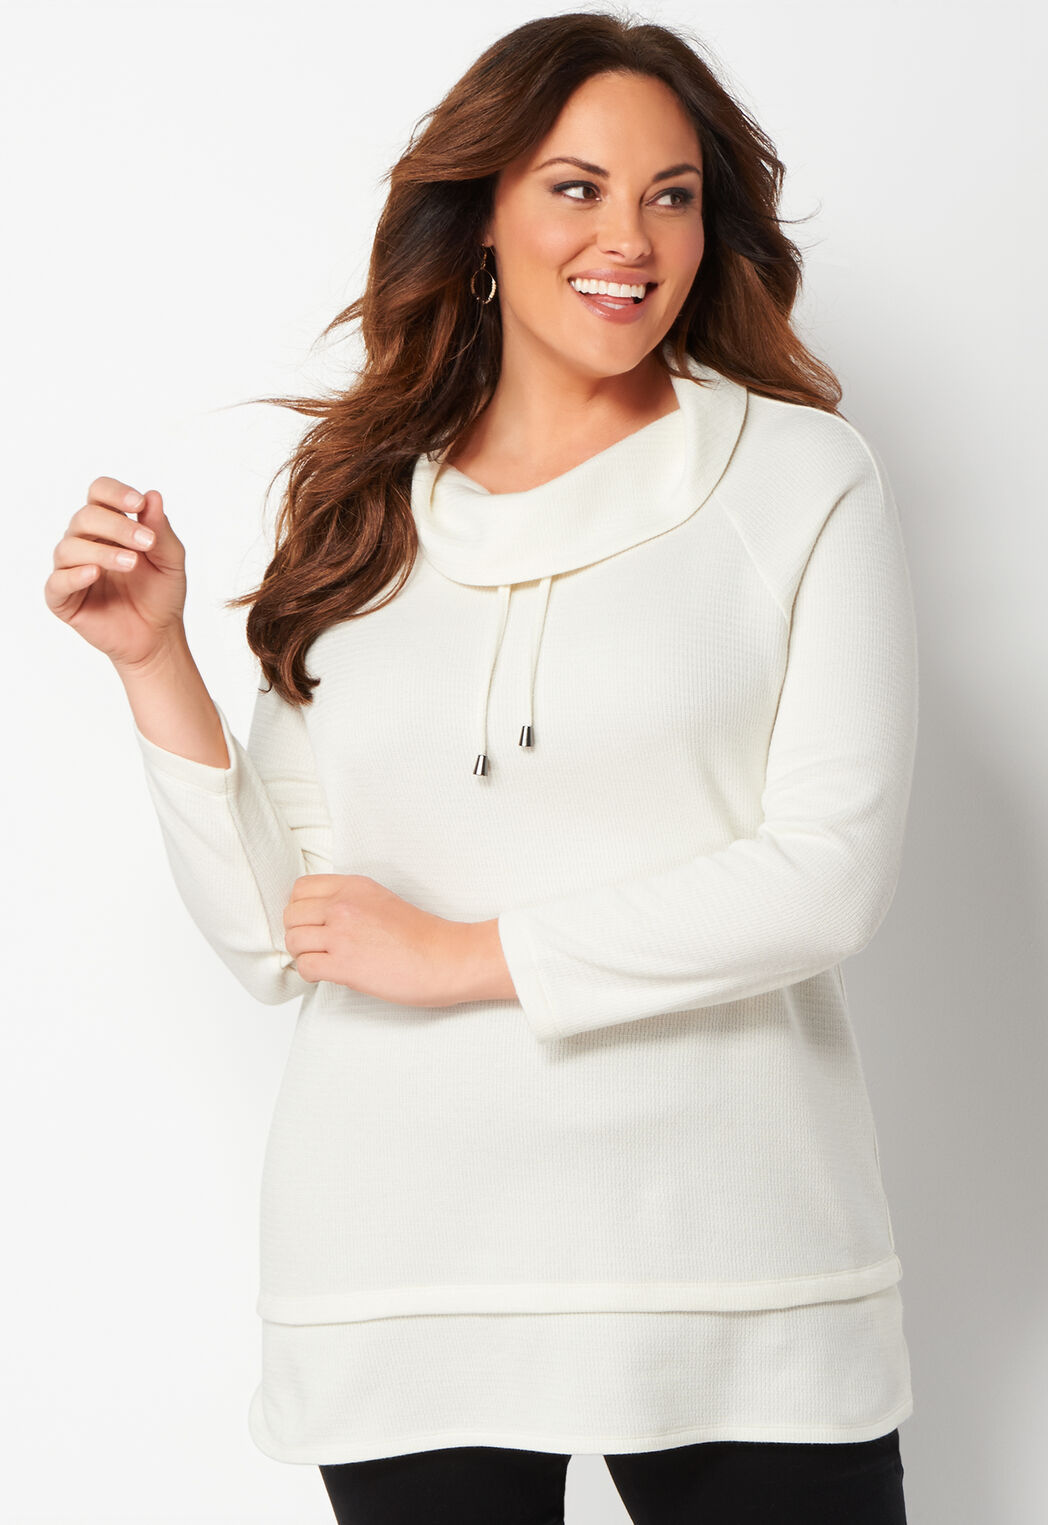 women's textured cowl neck plus size knit top from christopher